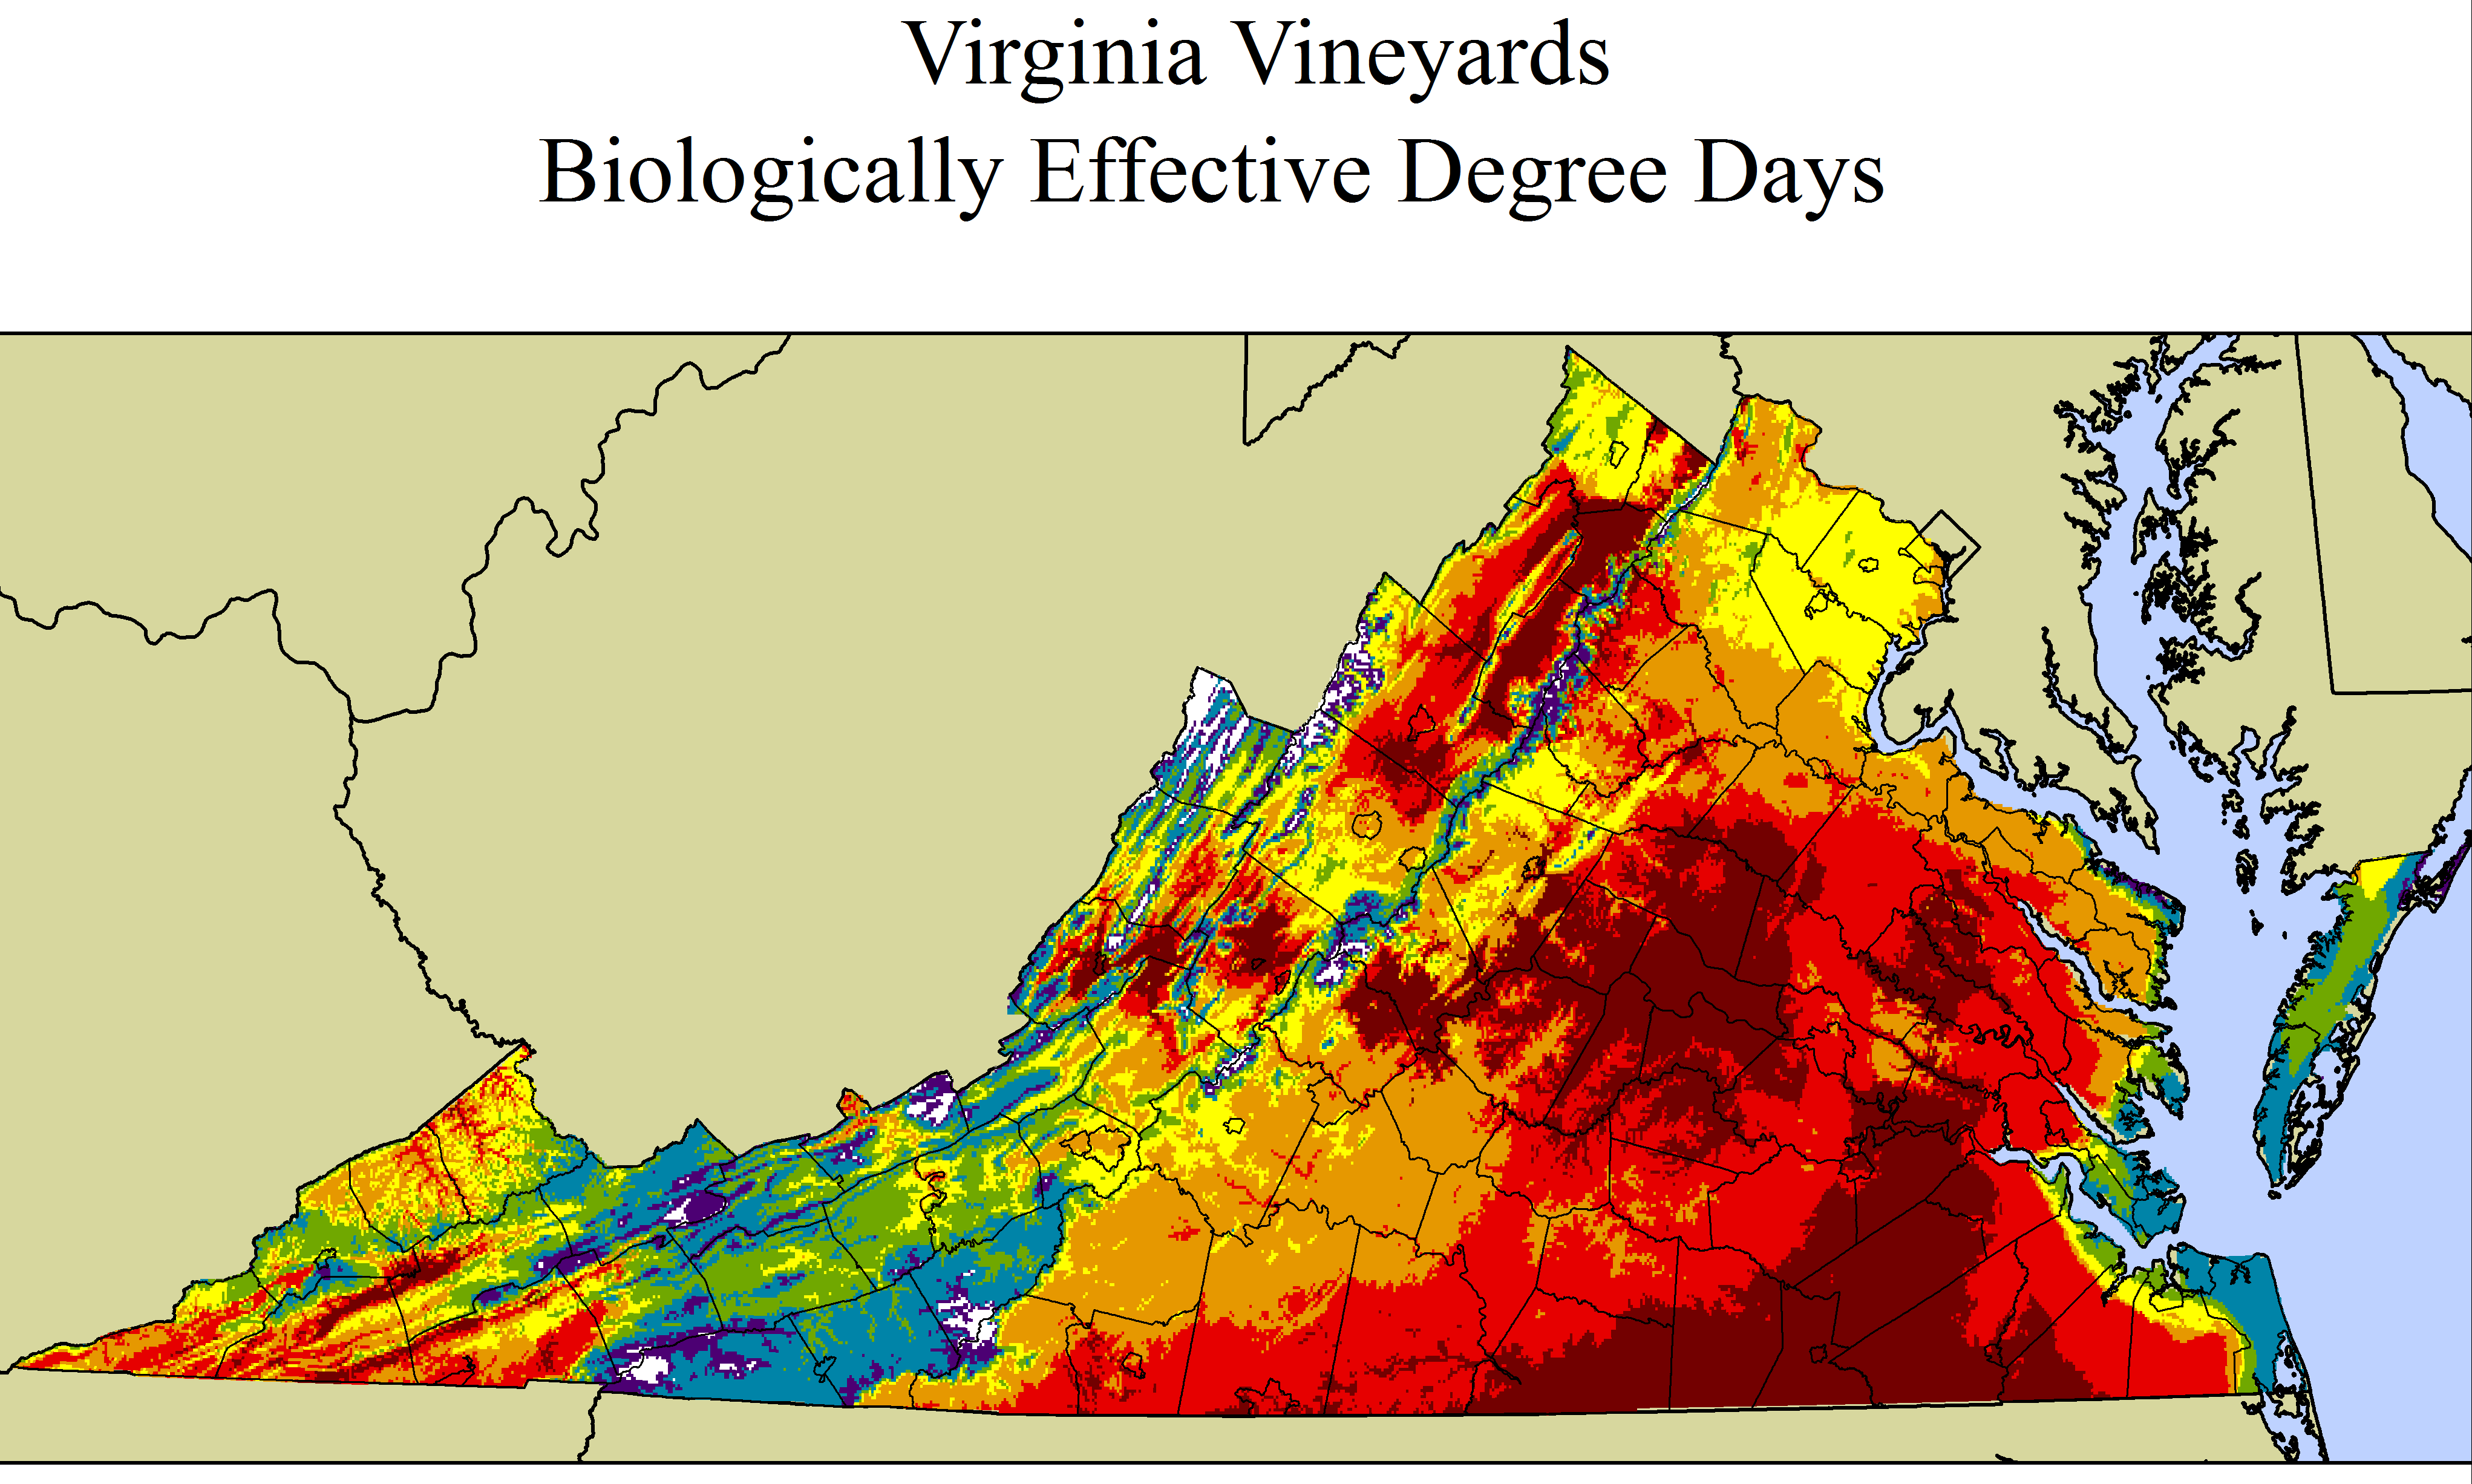 """Improved grape and wine quality in a challenging environment: An eastern US model for sustainability and economic vitality"" Site assessment reports vineyard sustainability for eastern states."